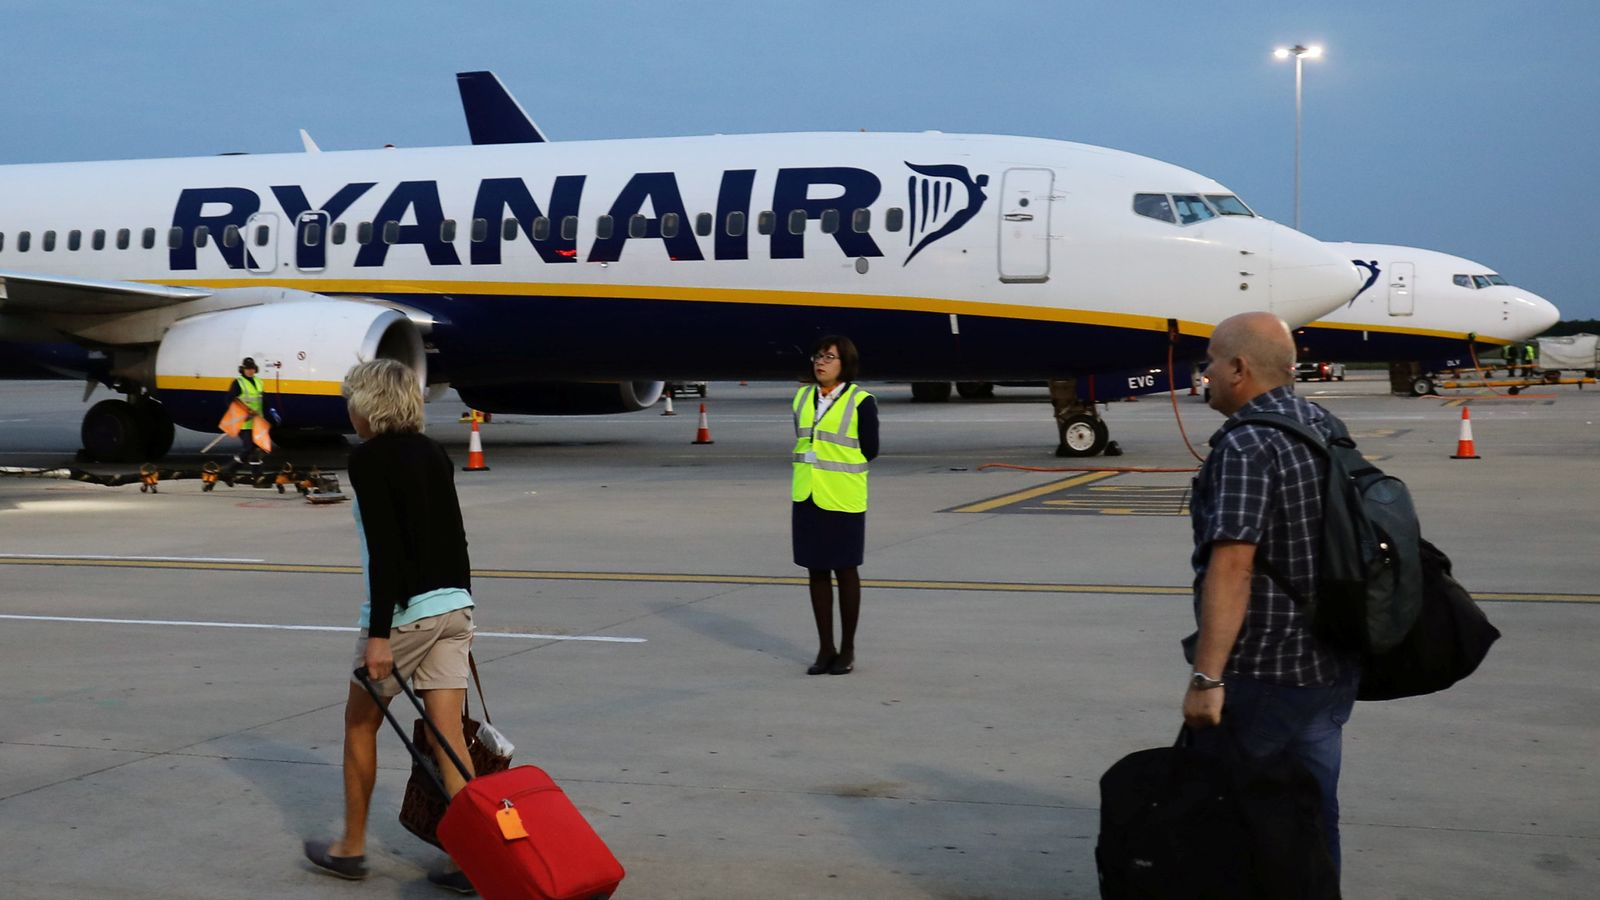 A Ryanair flight at Stansted Airport